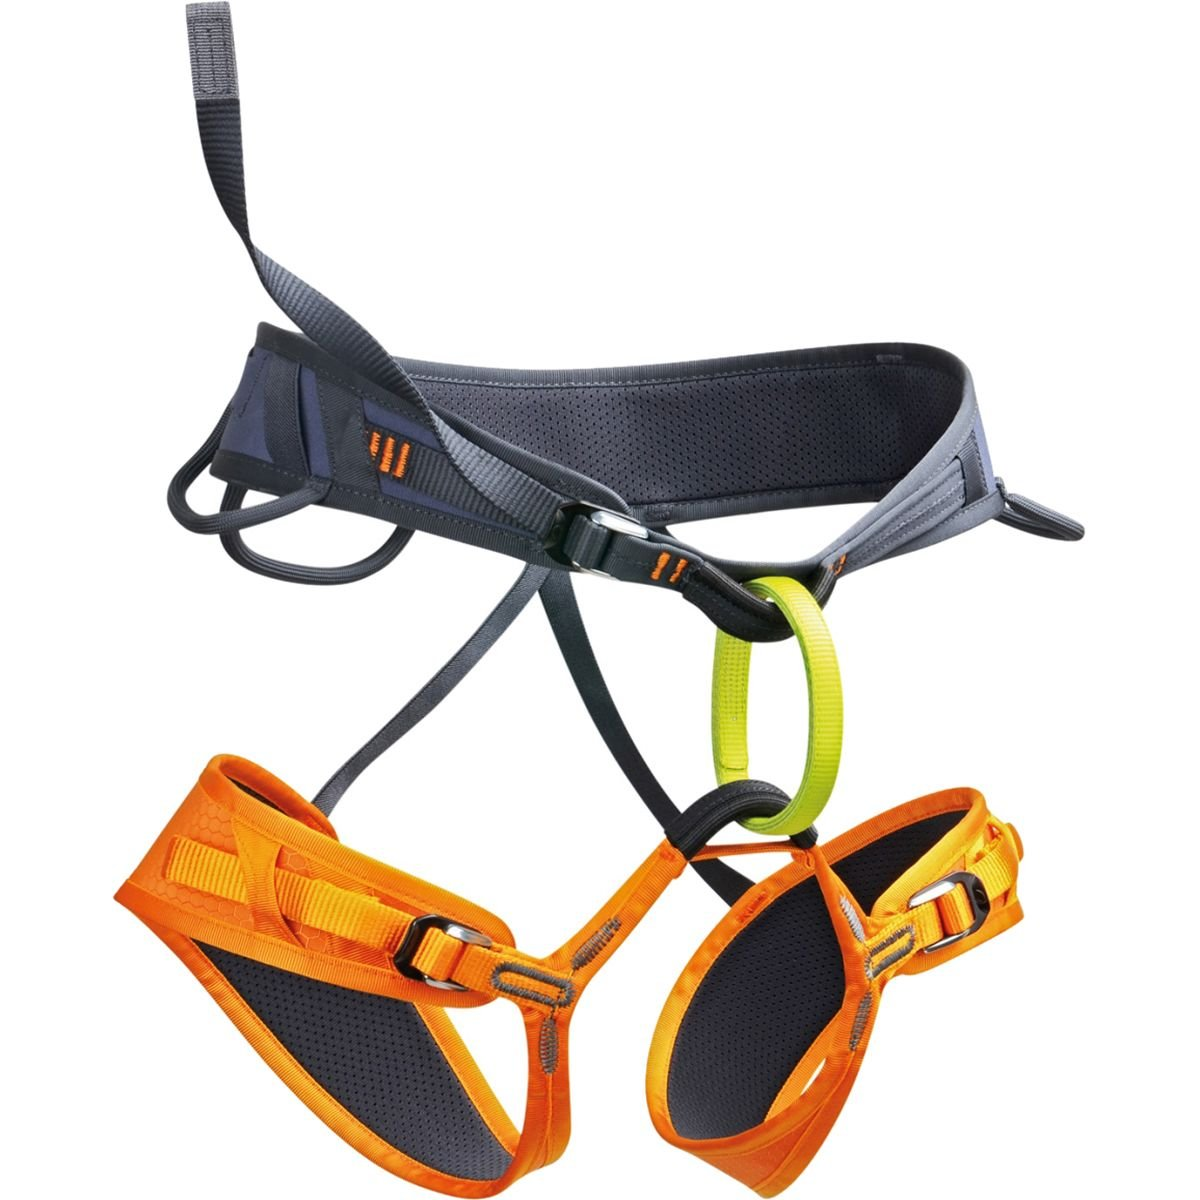 Amazon.com : EDELRID - Wing Harness : Sports & Outdoors